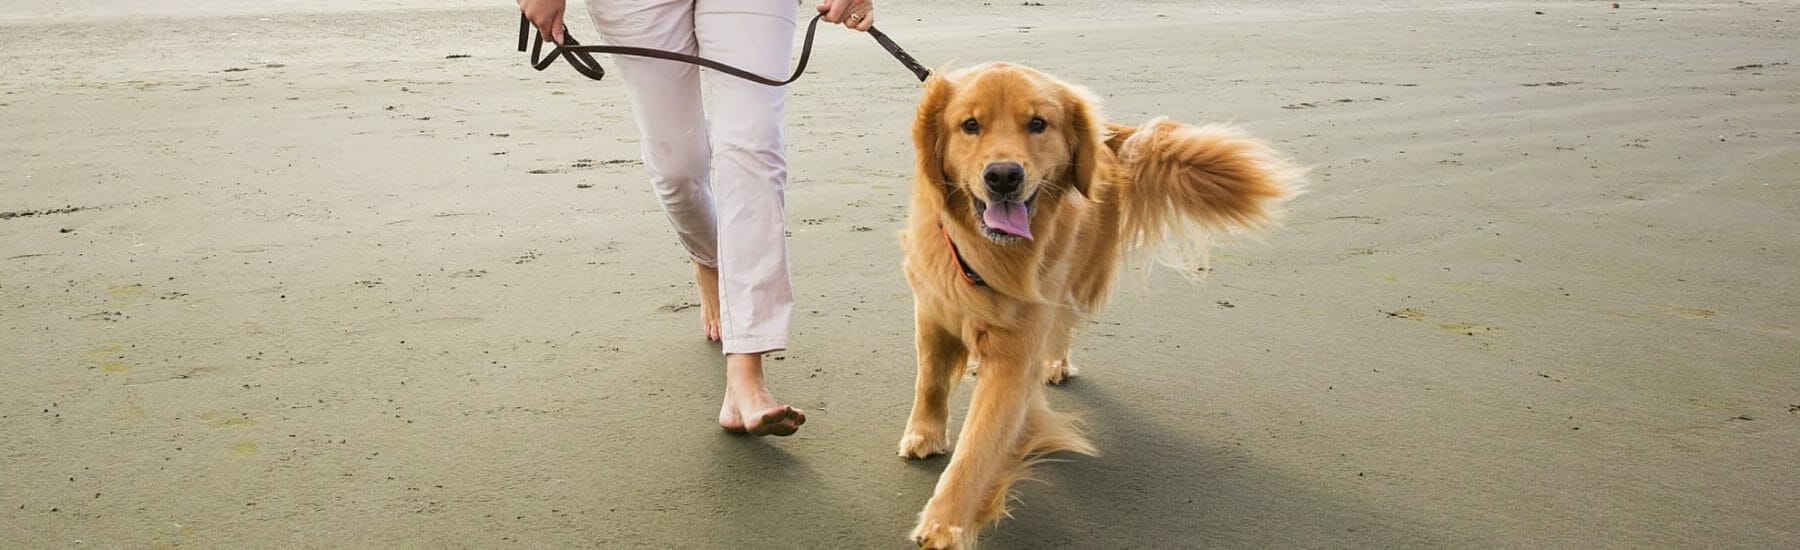 Golden dog walking on beach while on leash